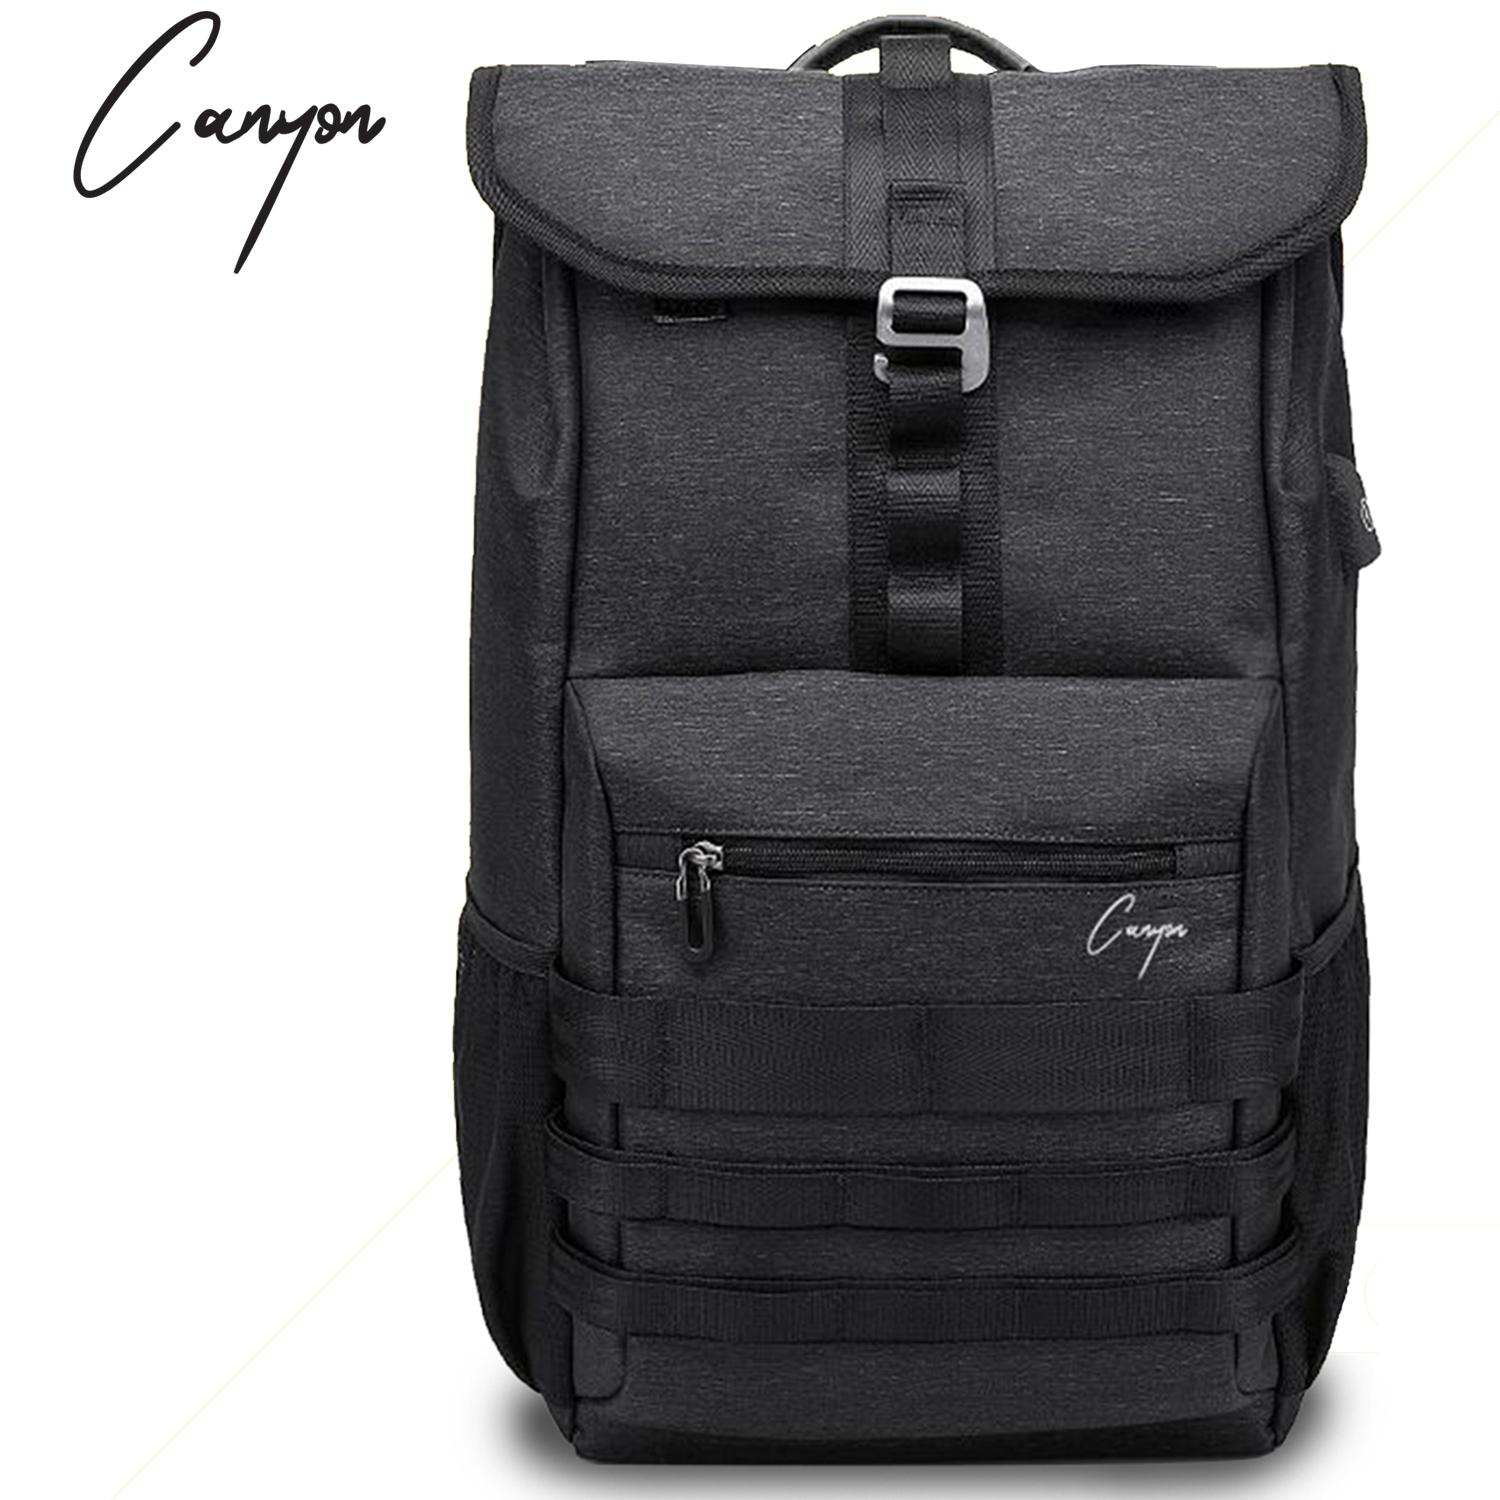 dc5d3ebfcb13 (Lazada Exclusive) ONYX Canyon New Black Urban Mens Travel Backpack 40L